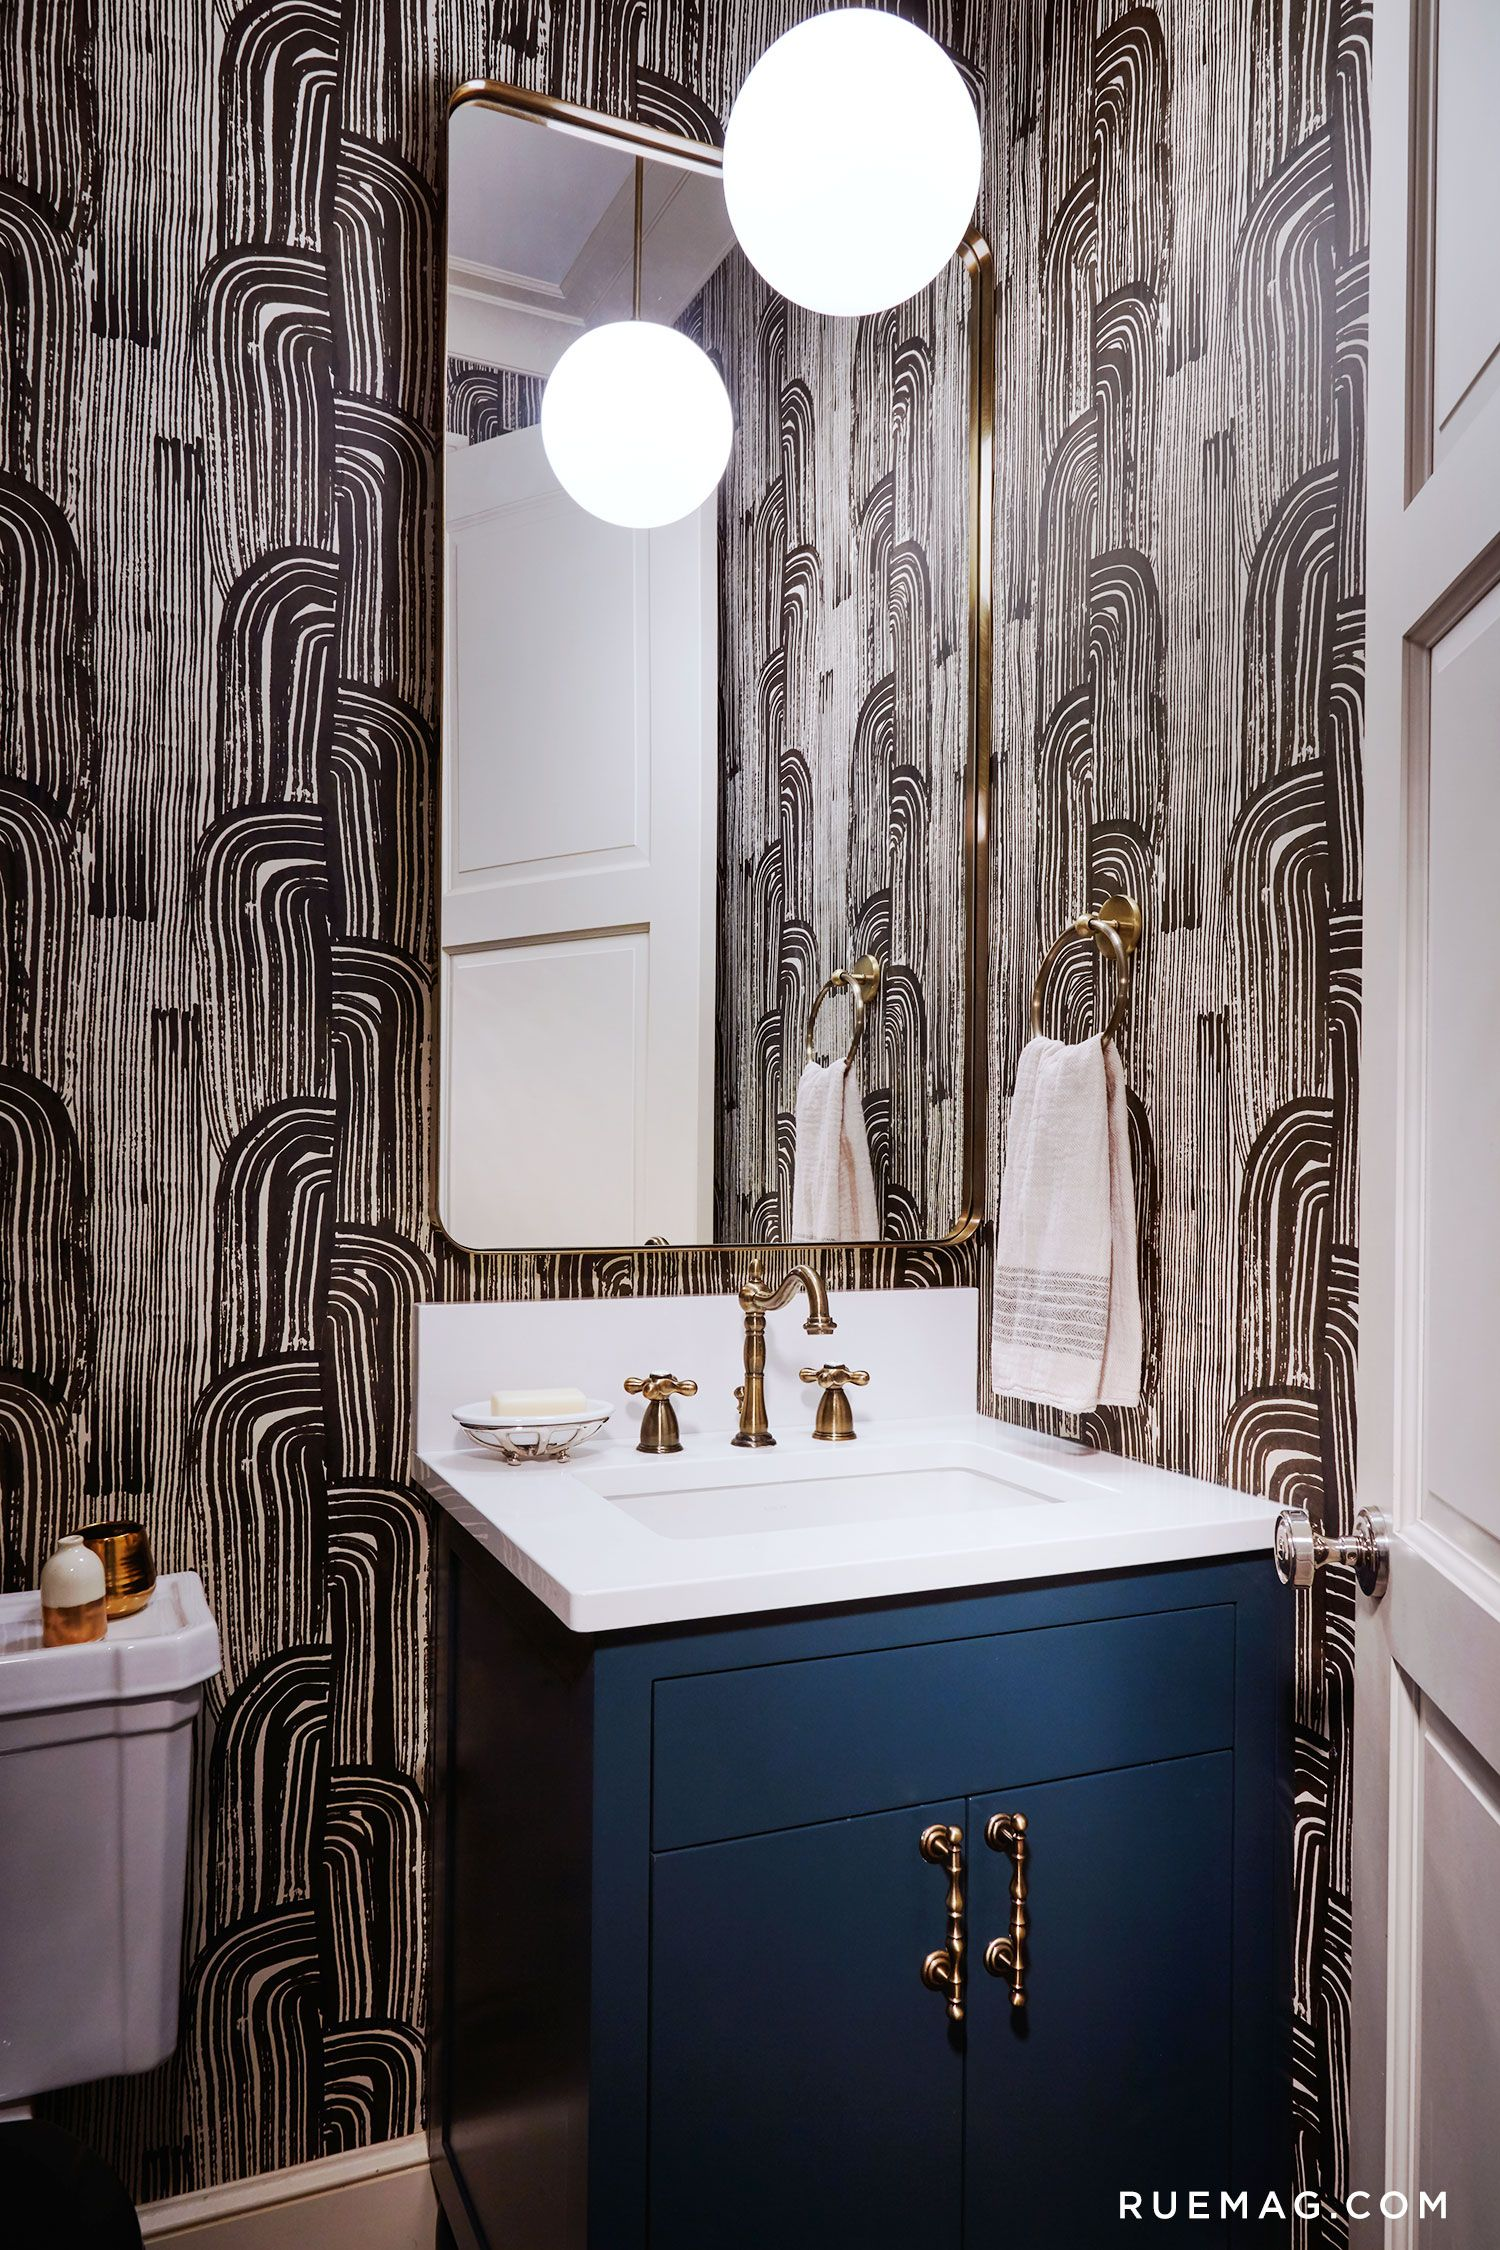 Bathrooms An Eclectic Greystone In Chicago  Rue Featuring Kelly  Wearstler's Crescent Wallpaper